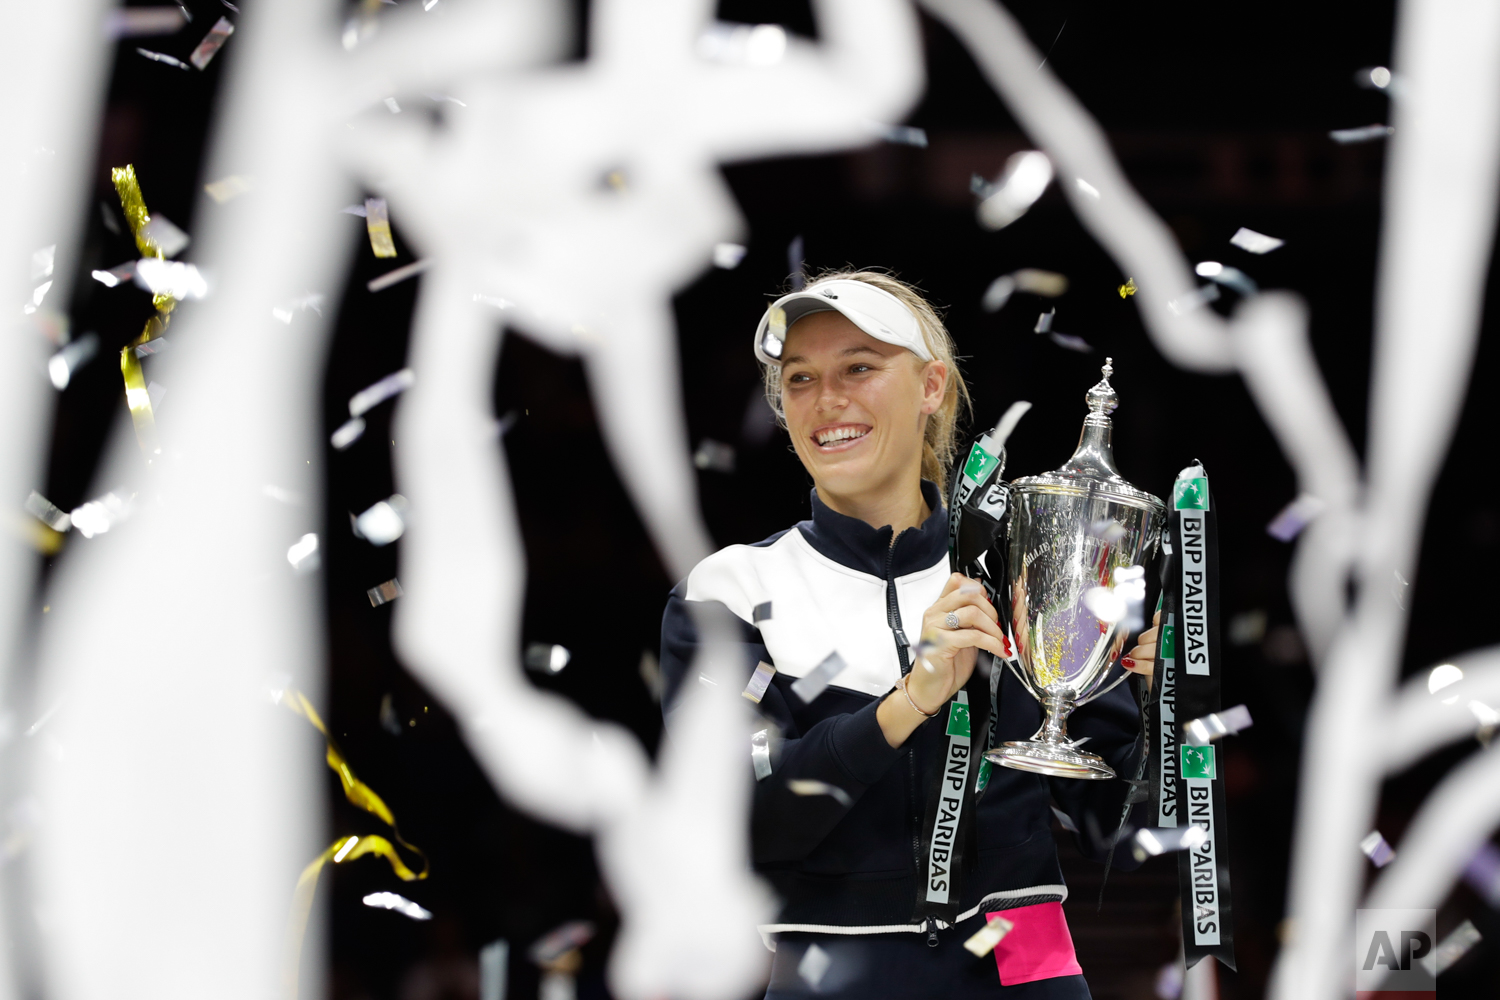 Caroline Wozniacki of Denmark lifts the winner's trophy after beating Venus Williams of the United States during their singles final match at the WTA tennis tournament in Singapore, on Sunday, Oct. 29, 2017. (AP Photo/Yong Teck Lim)